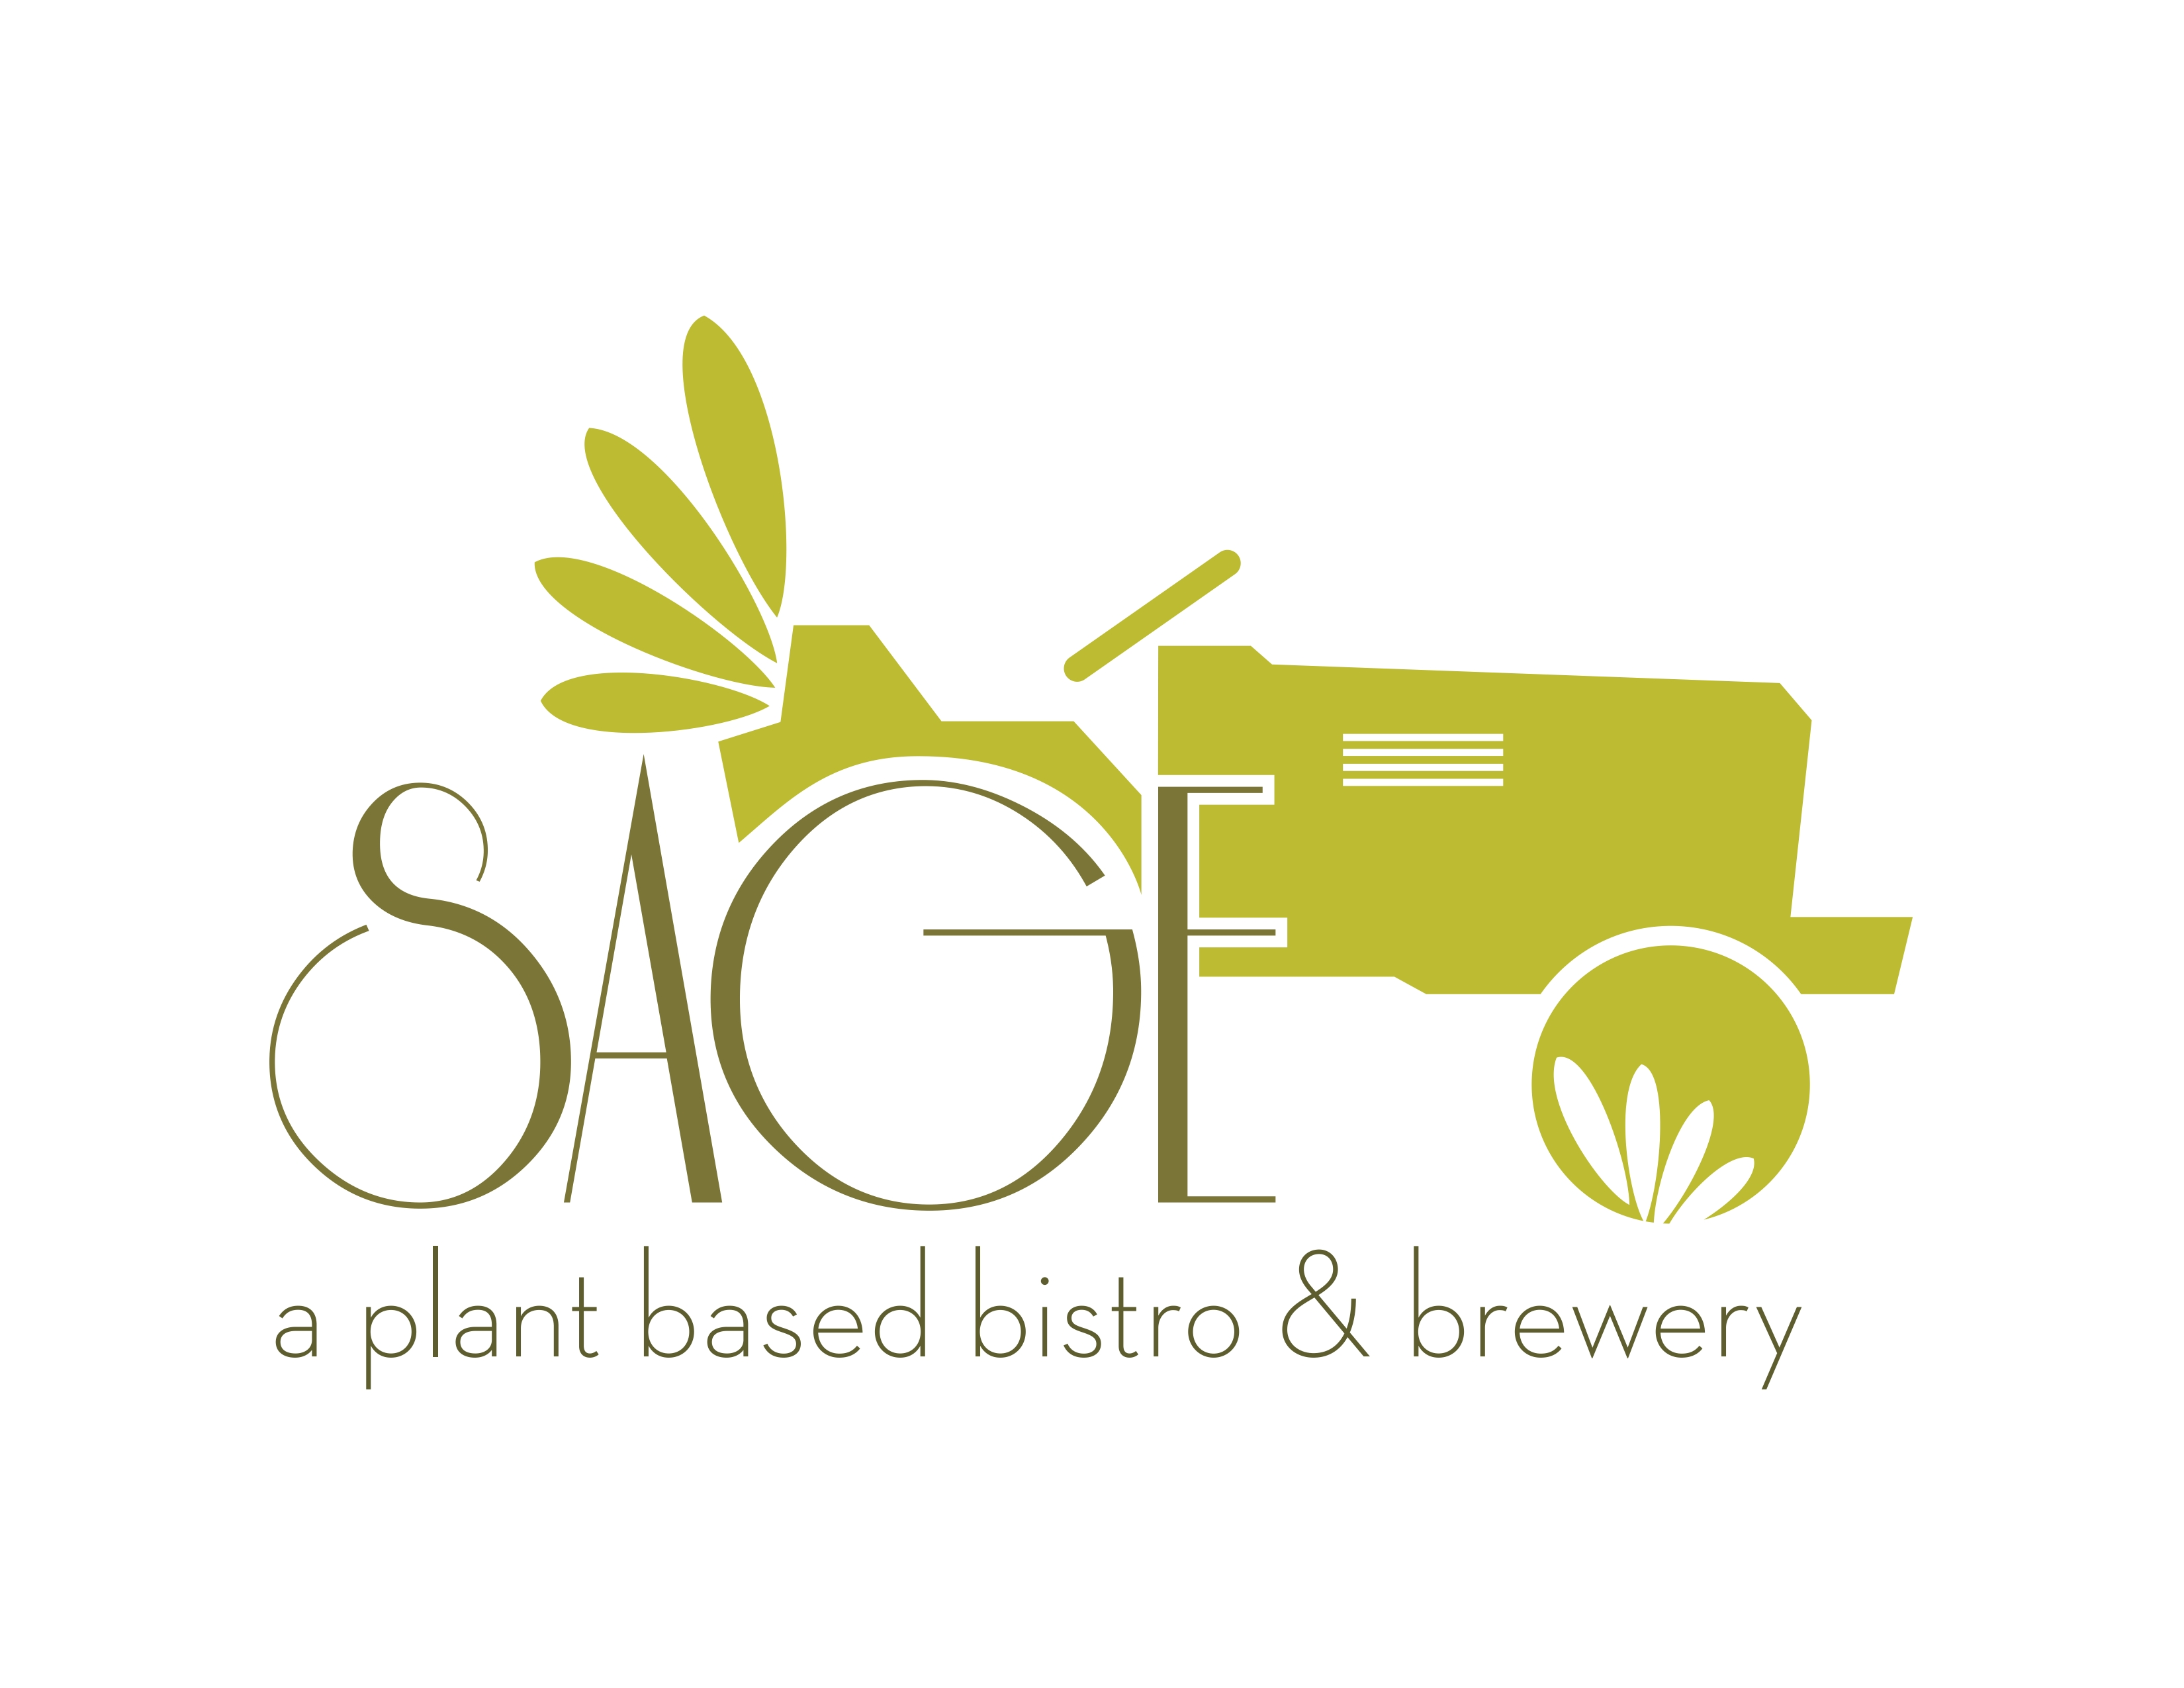 Sage Vegan Bistro and Brewery